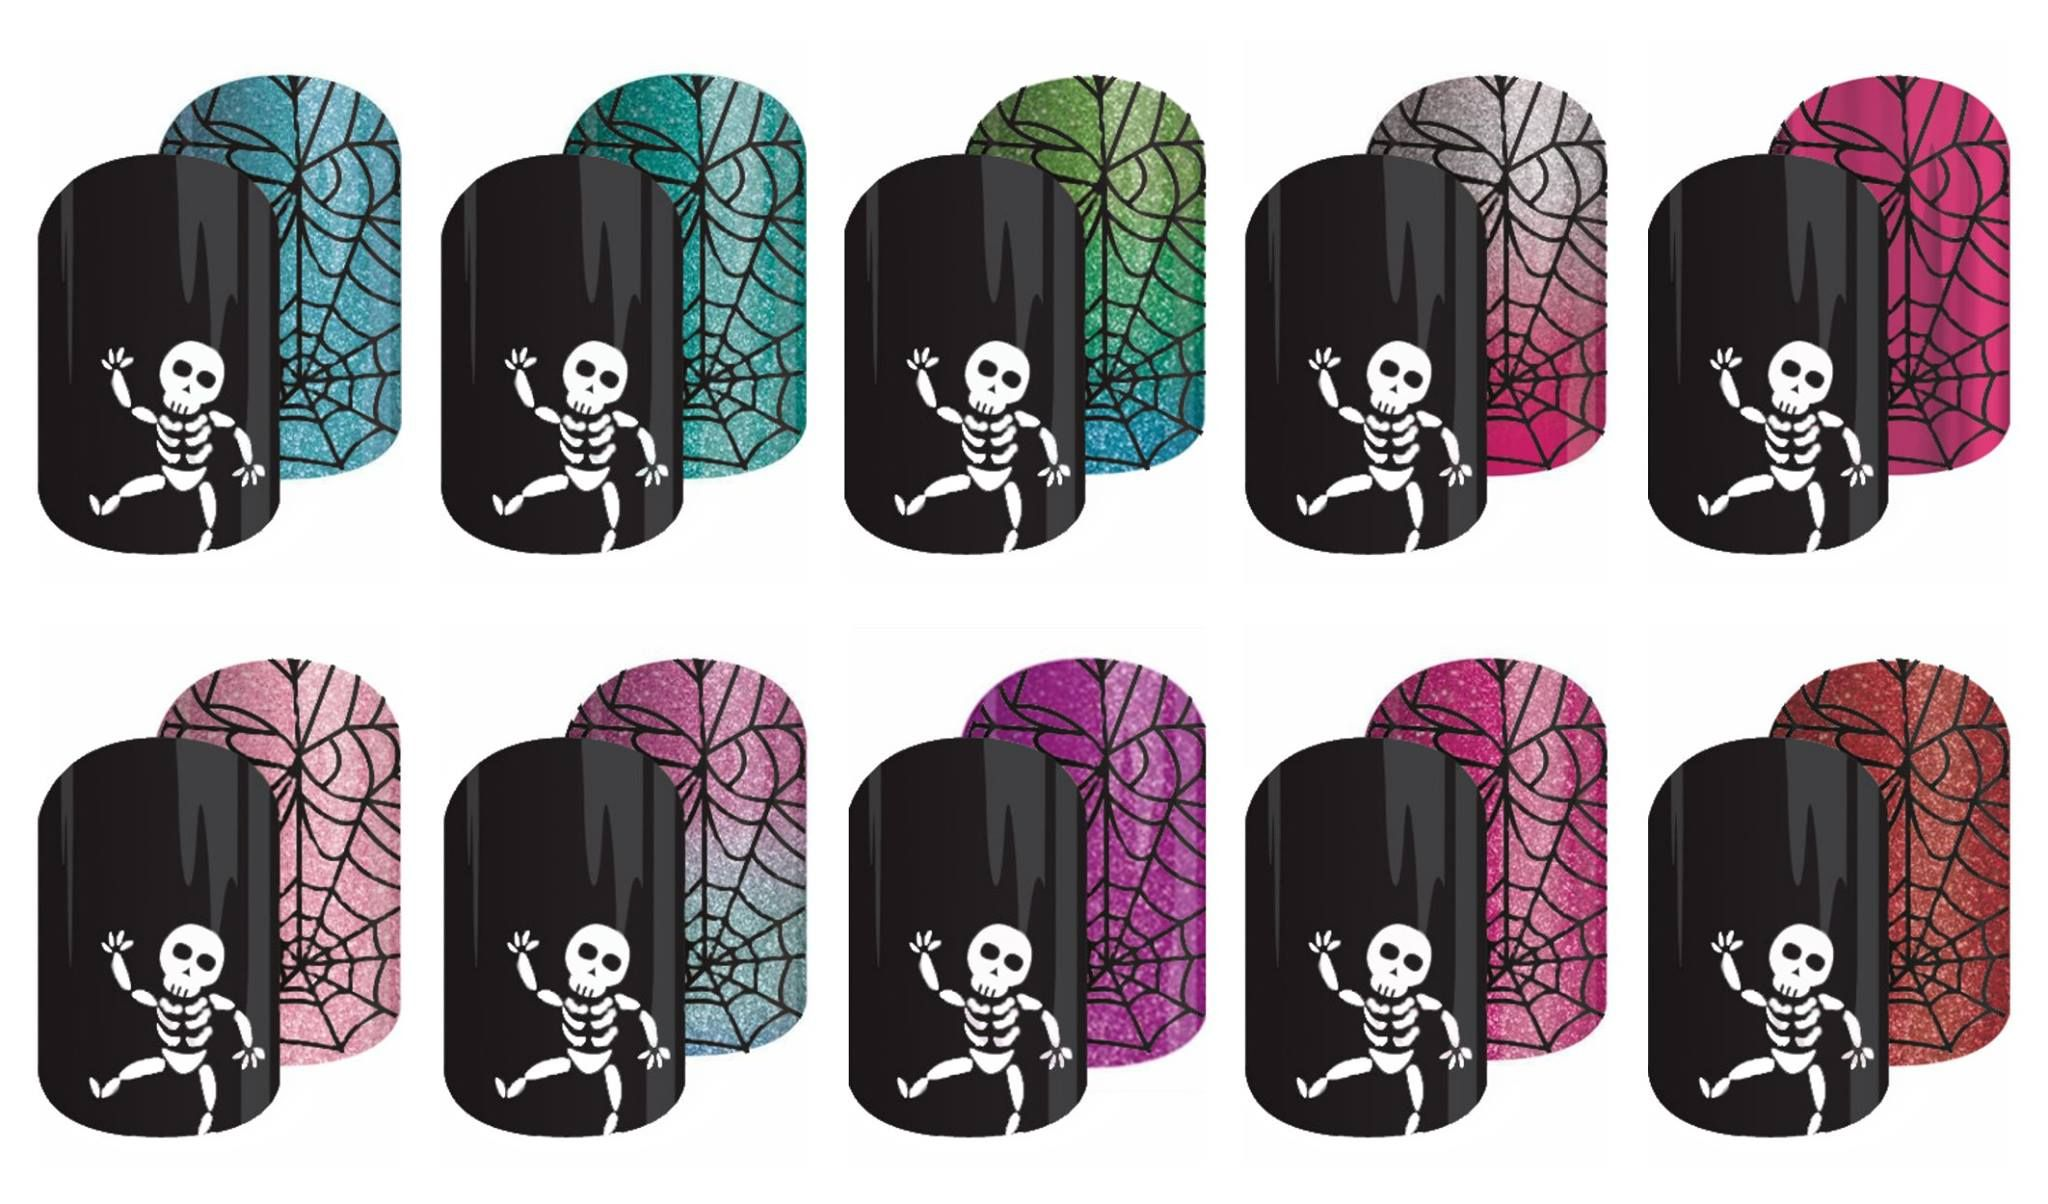 The possibilities are endless with this Halloween wrap from Jamberry.